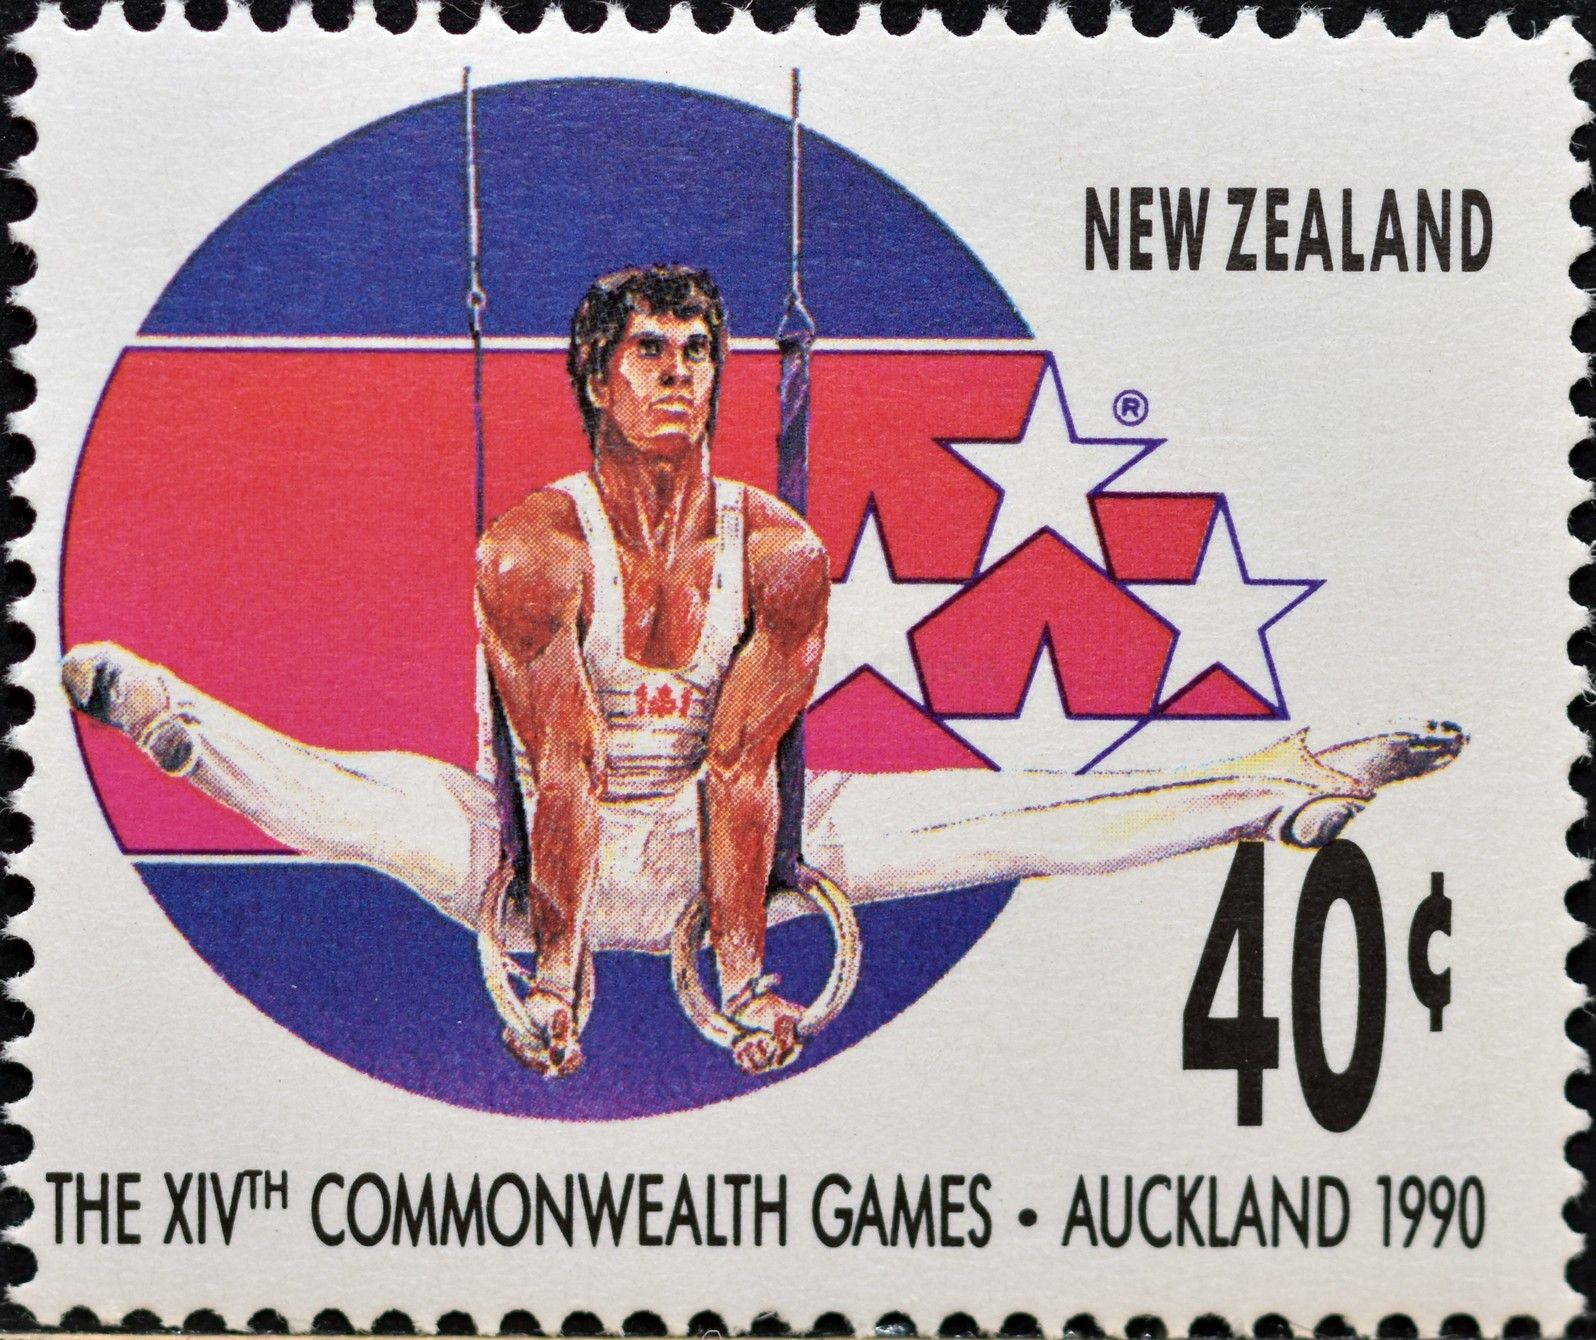 New Zealand (789) 1989 The 14th Anniversary of the